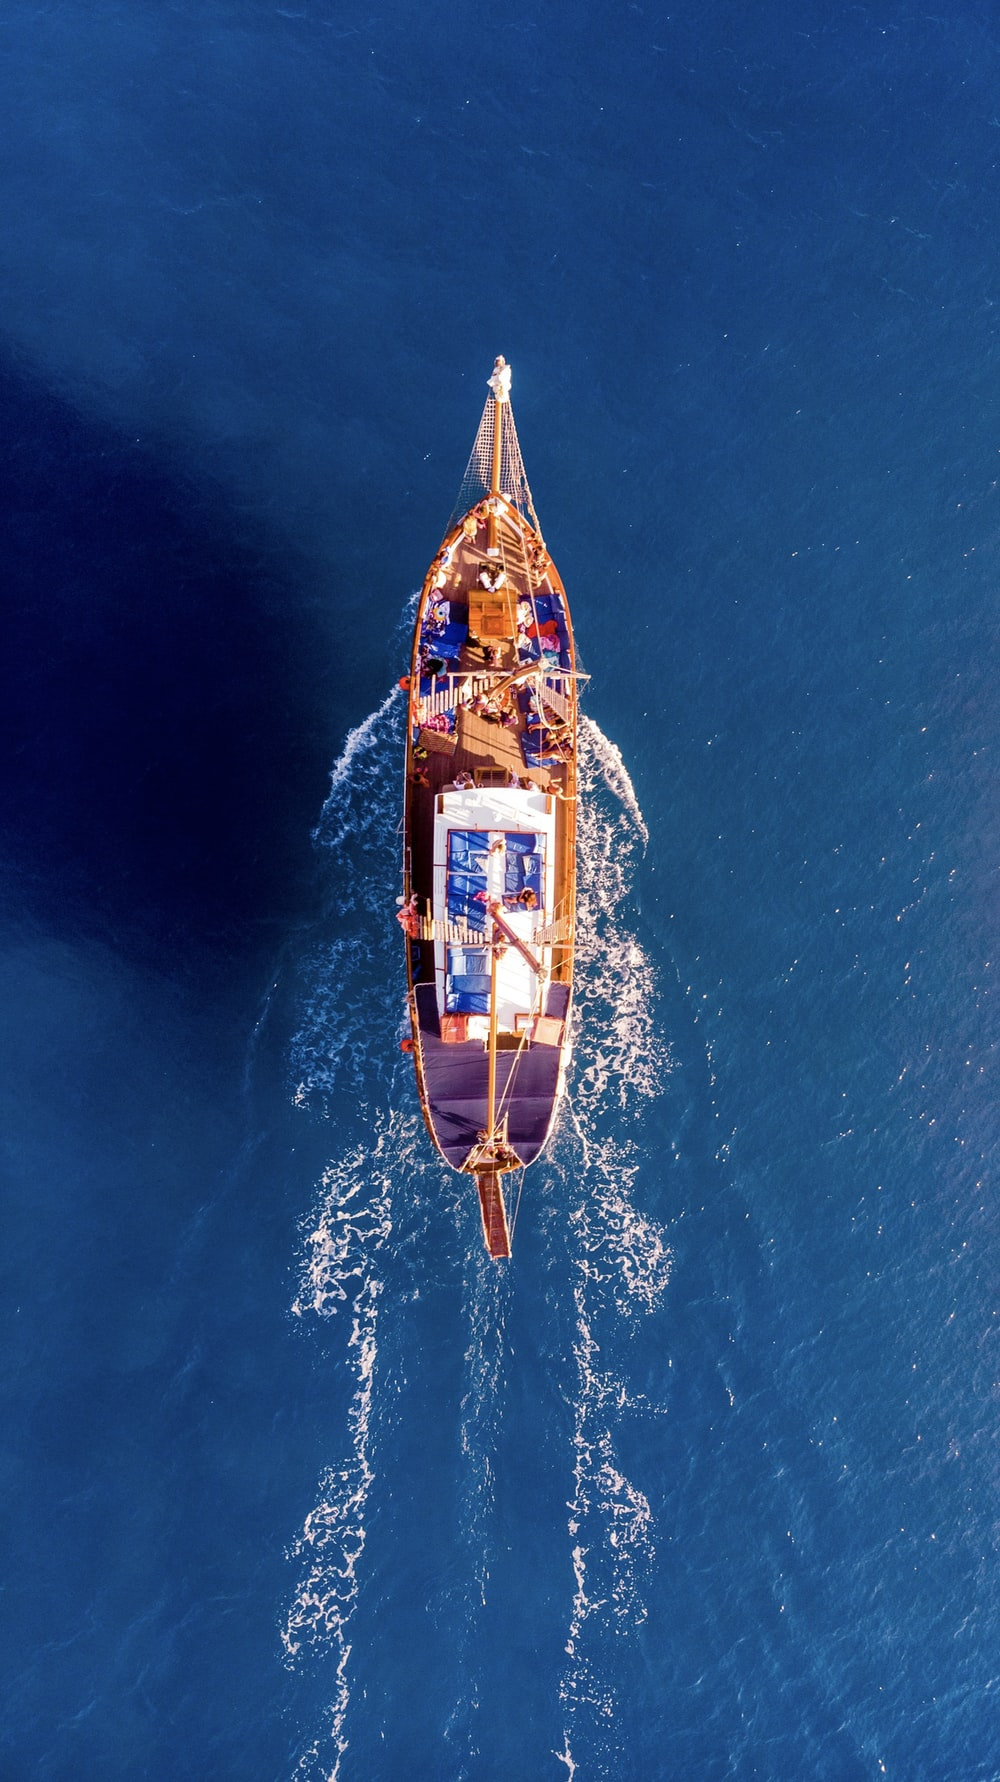 aerial photography of boat on blue ocean during daytime